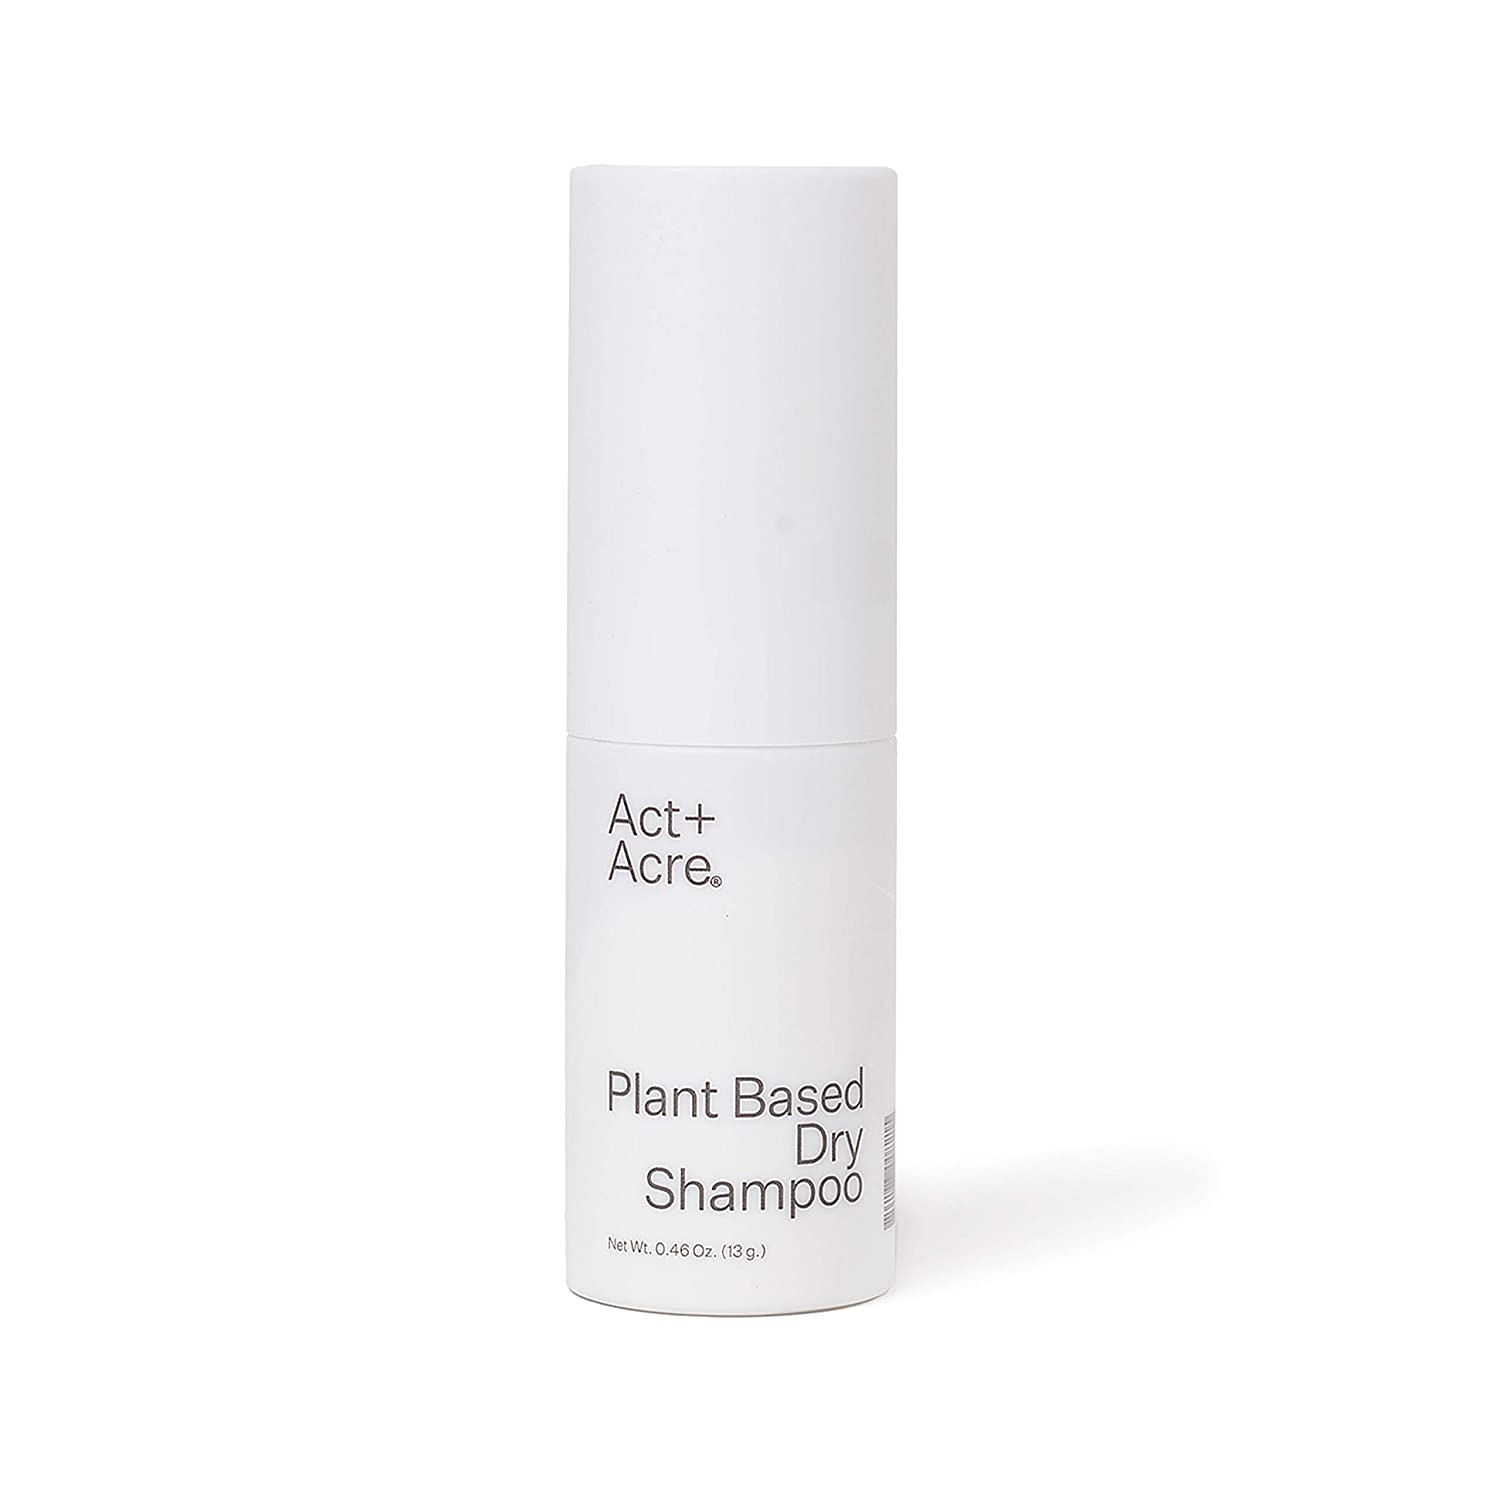 Act+Acre Plant Based Dry Shampoo | Natural and Unscented Powder Spray with Fulvic Acid and Rice to Refresh Oily Hair and Build Volume (1.2 oz / 35 mL) Talc Free and Colorless for Light and Dark Hair